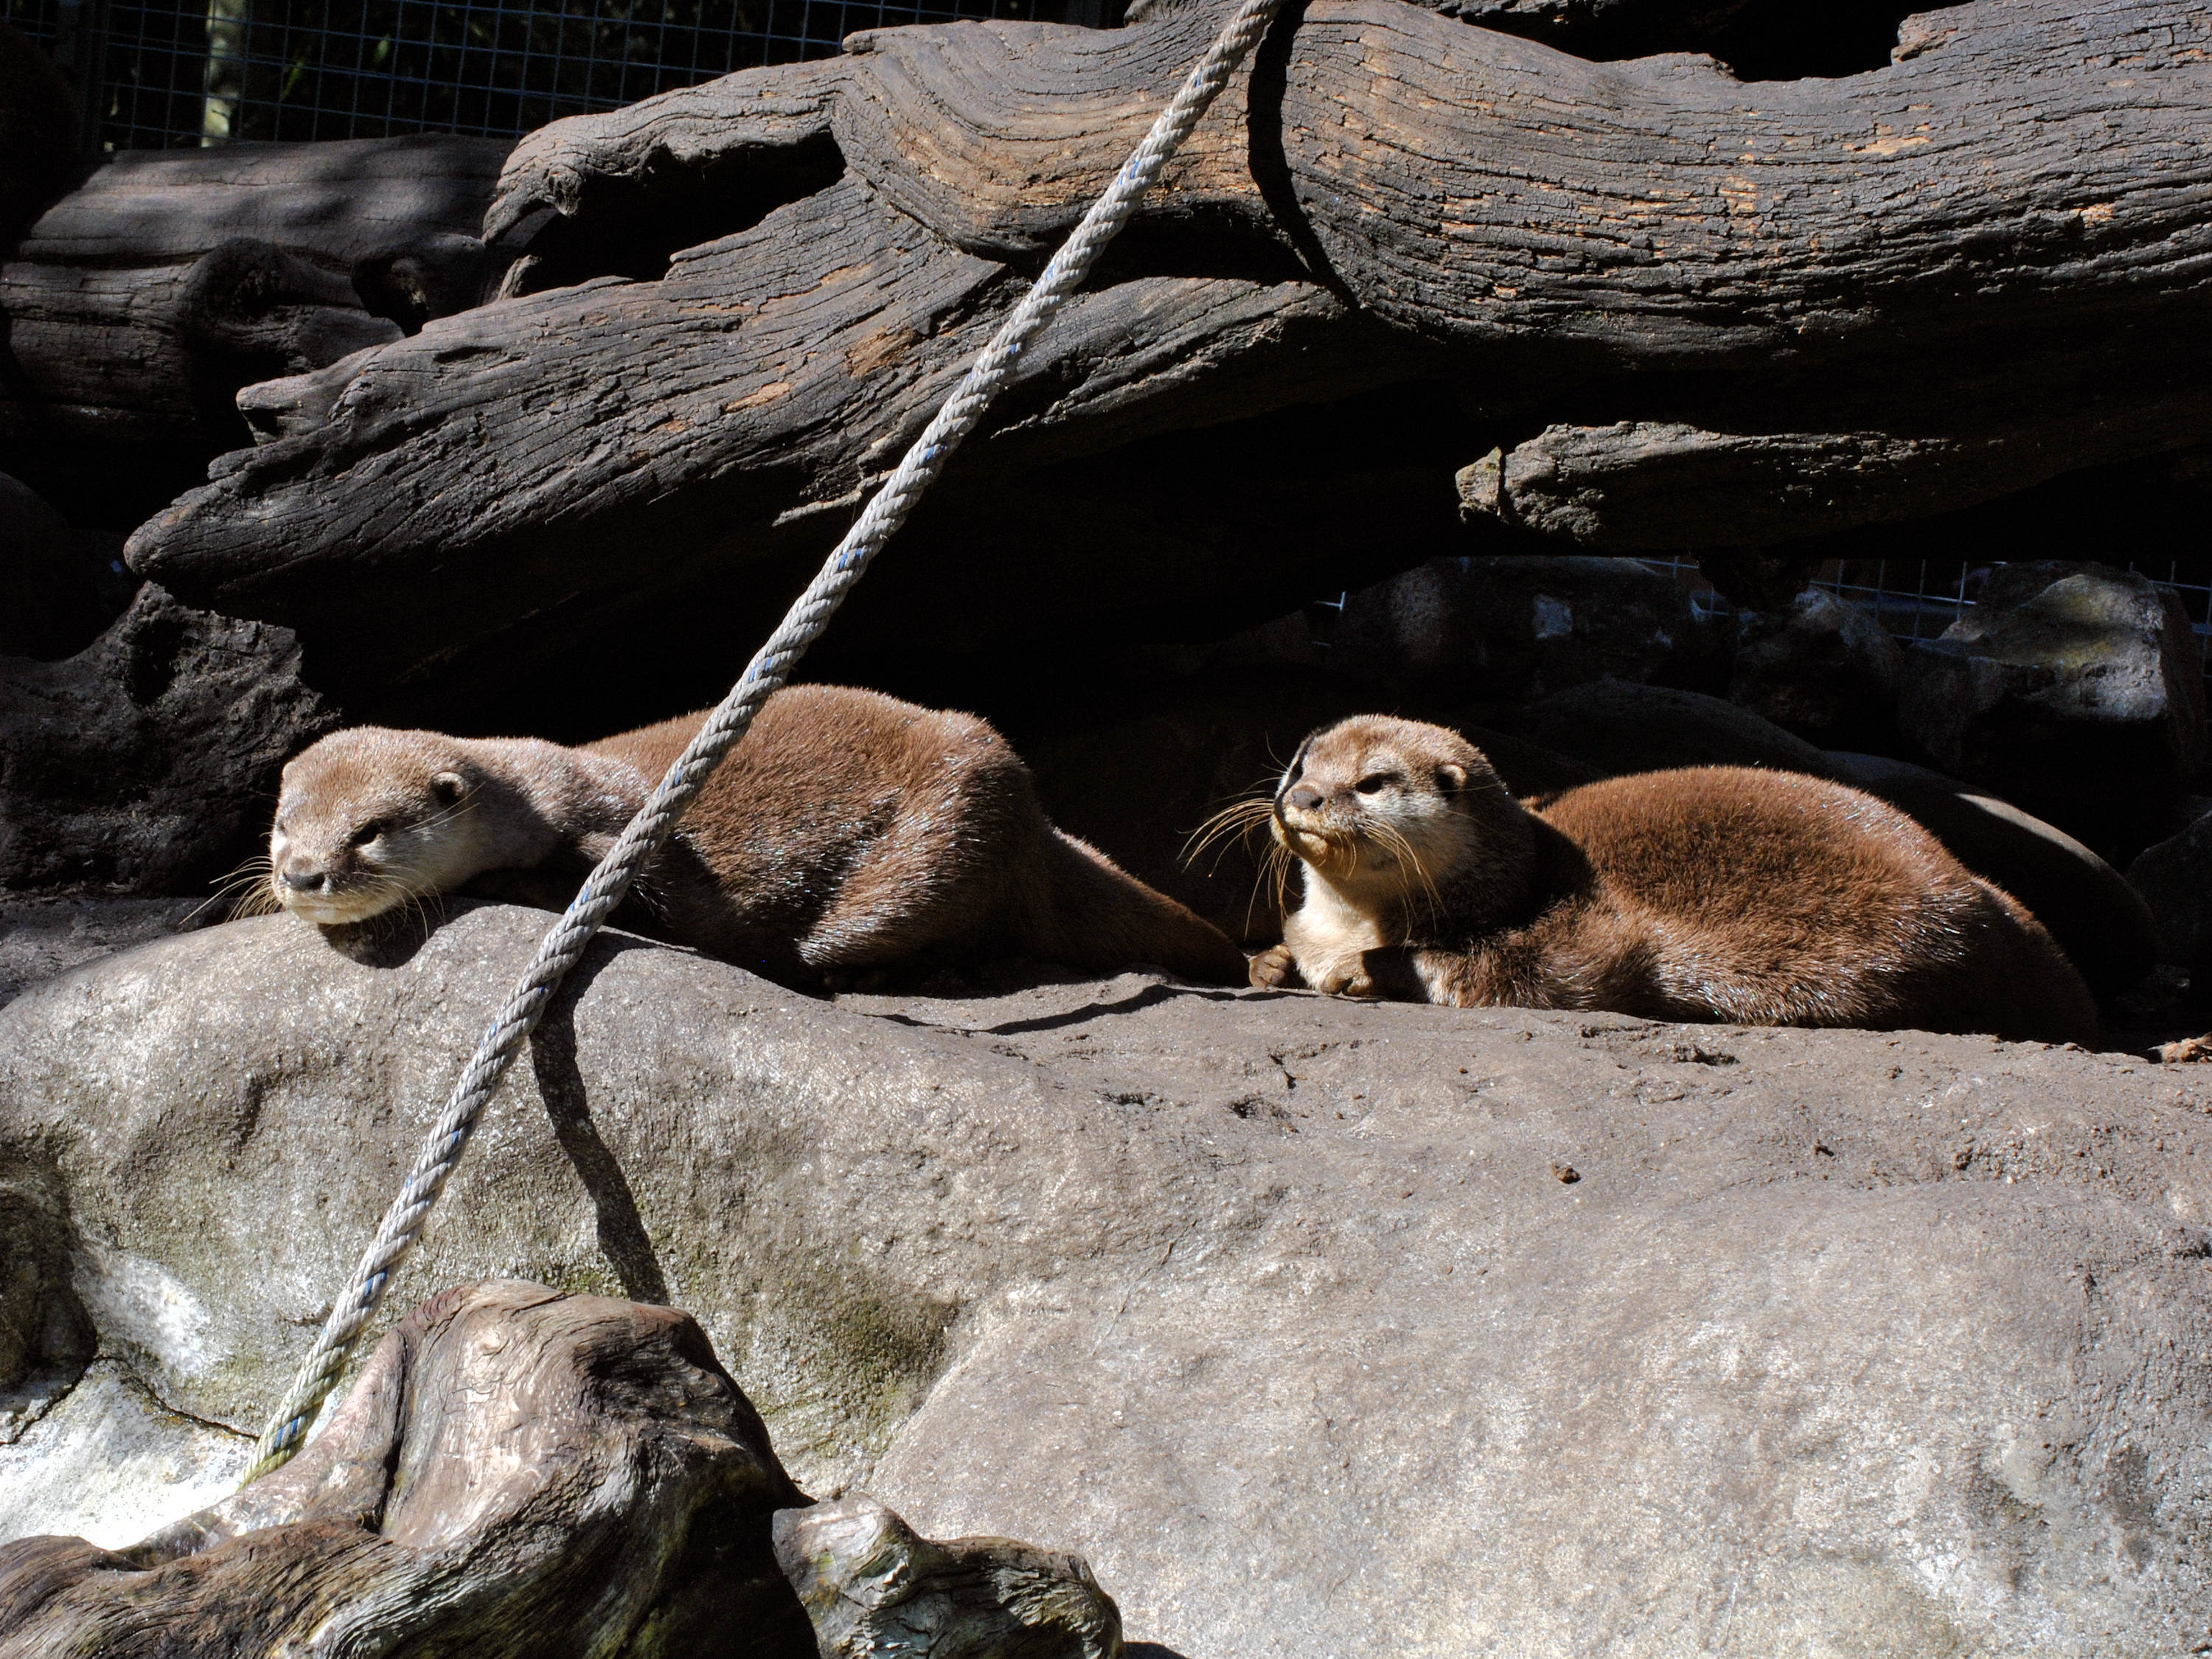 Loutre cendree - Asian small-clawed otter 3